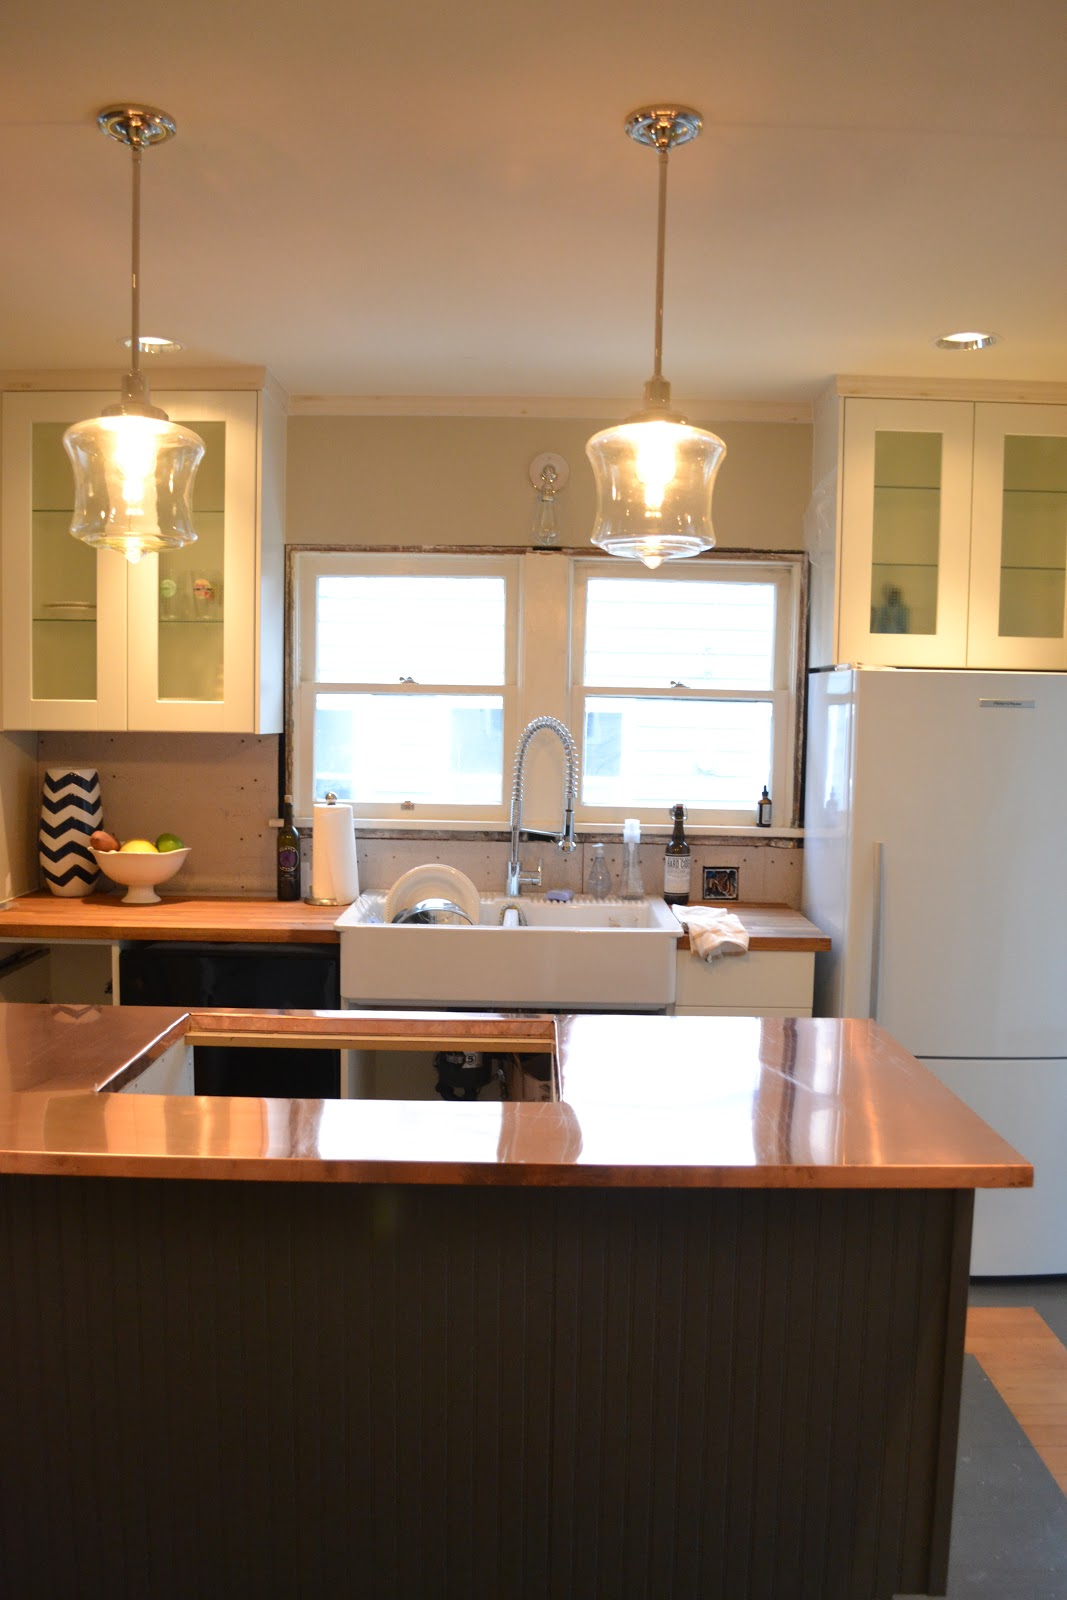 renovate copper counters kitchen lights light over kitchen sink Kitchen lights